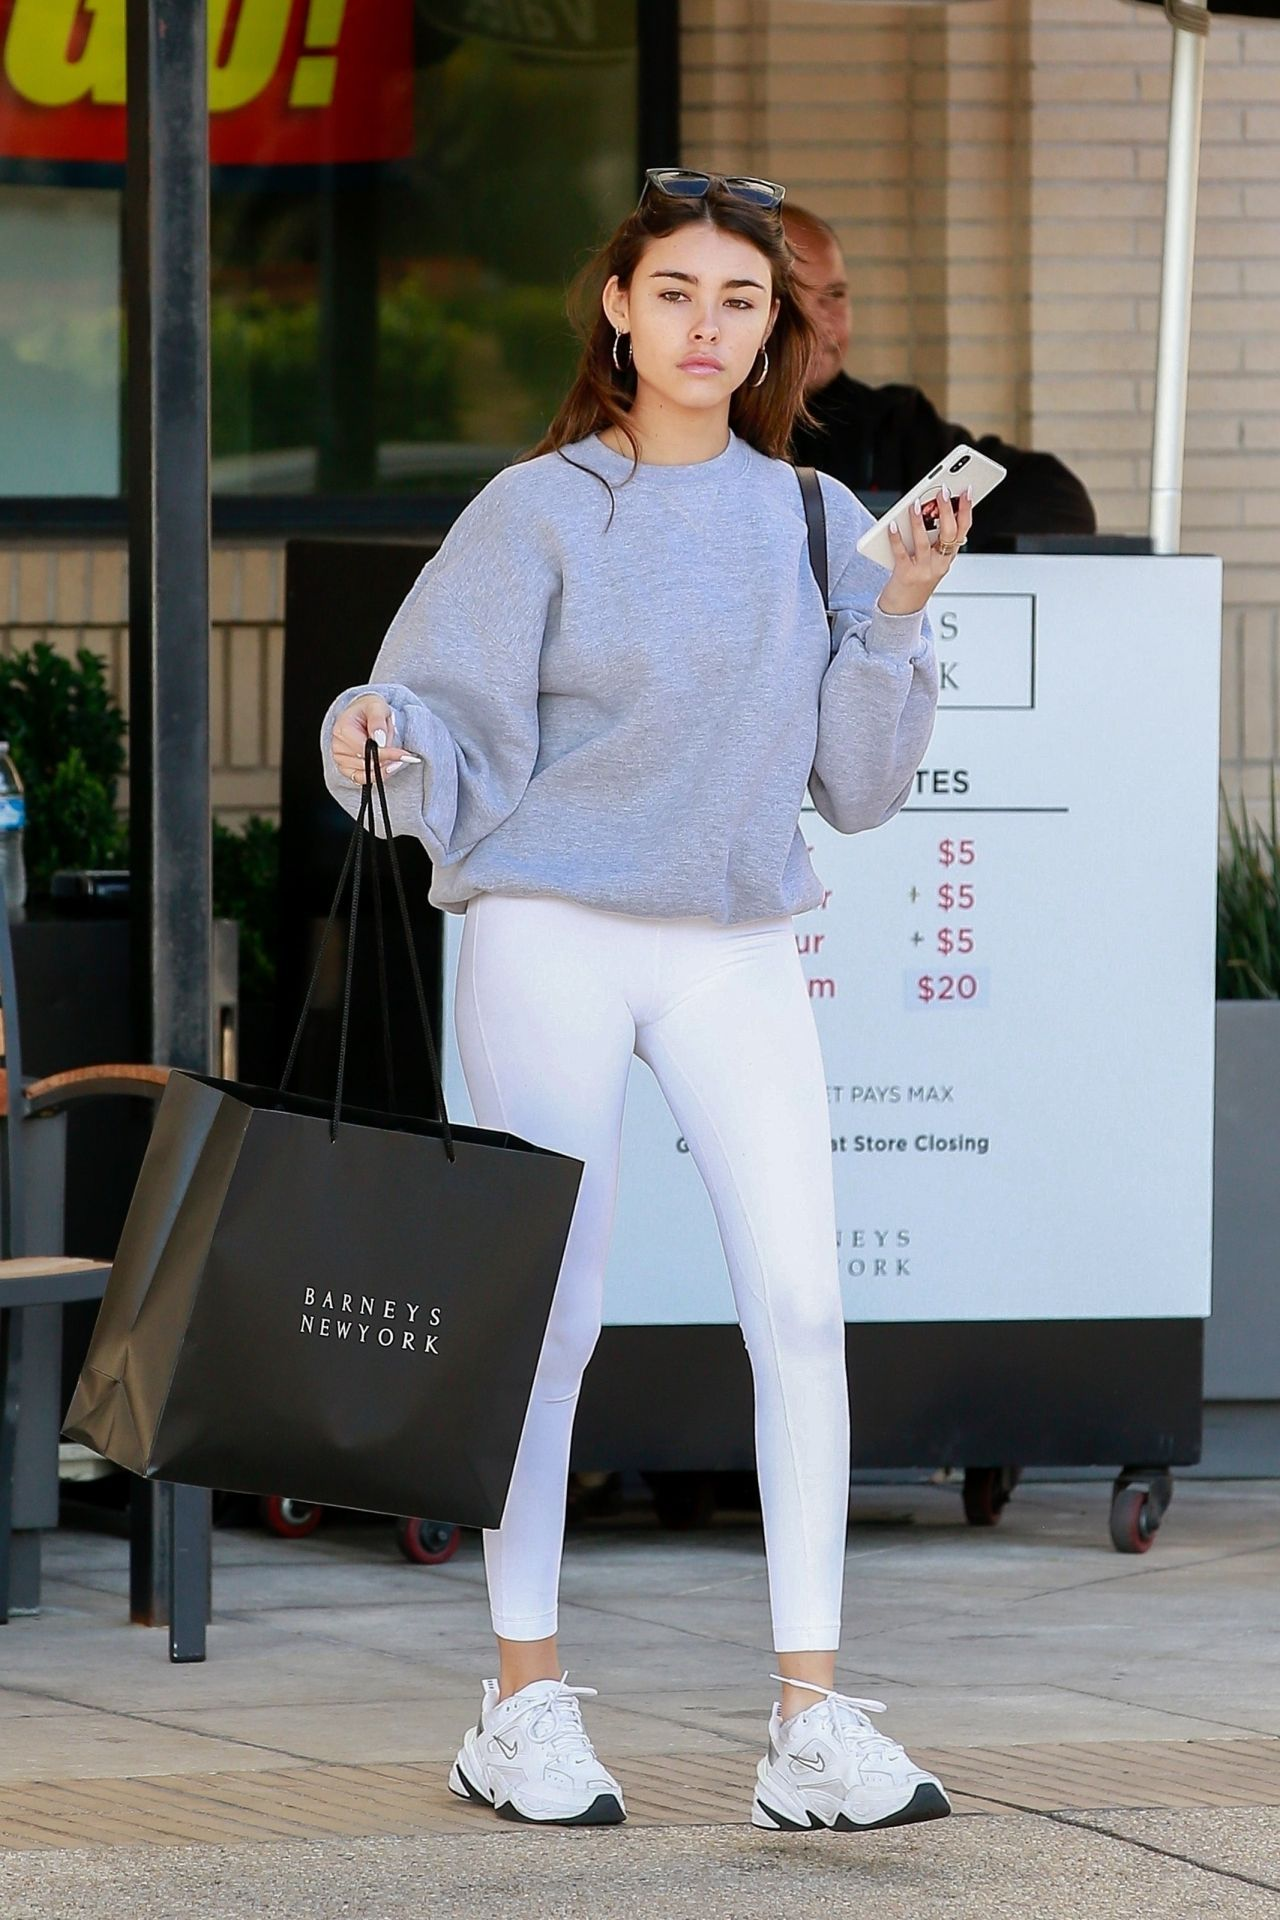 Madison Beer Shopping At Barneys New York In Beverly Hills 01 13 2020 Madison Beer Outfits Madison Beer Style Beer Outfit [ 1920 x 1280 Pixel ]